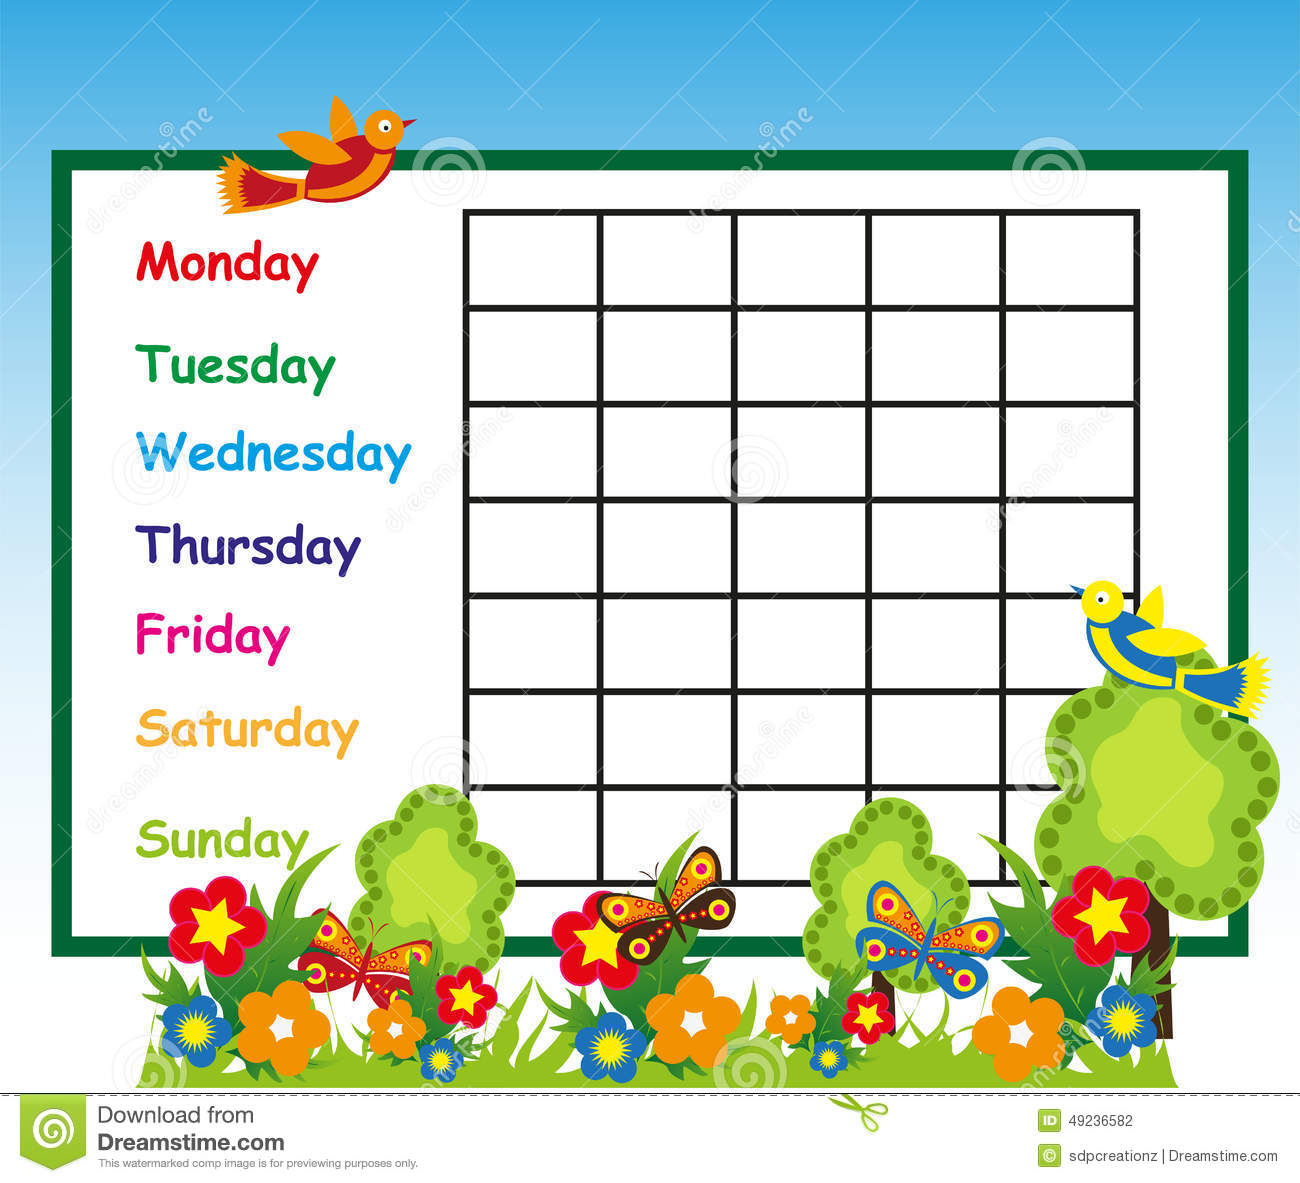 Quotes On School Time Table: School Time Table Stock Illustration. Image Of Plan